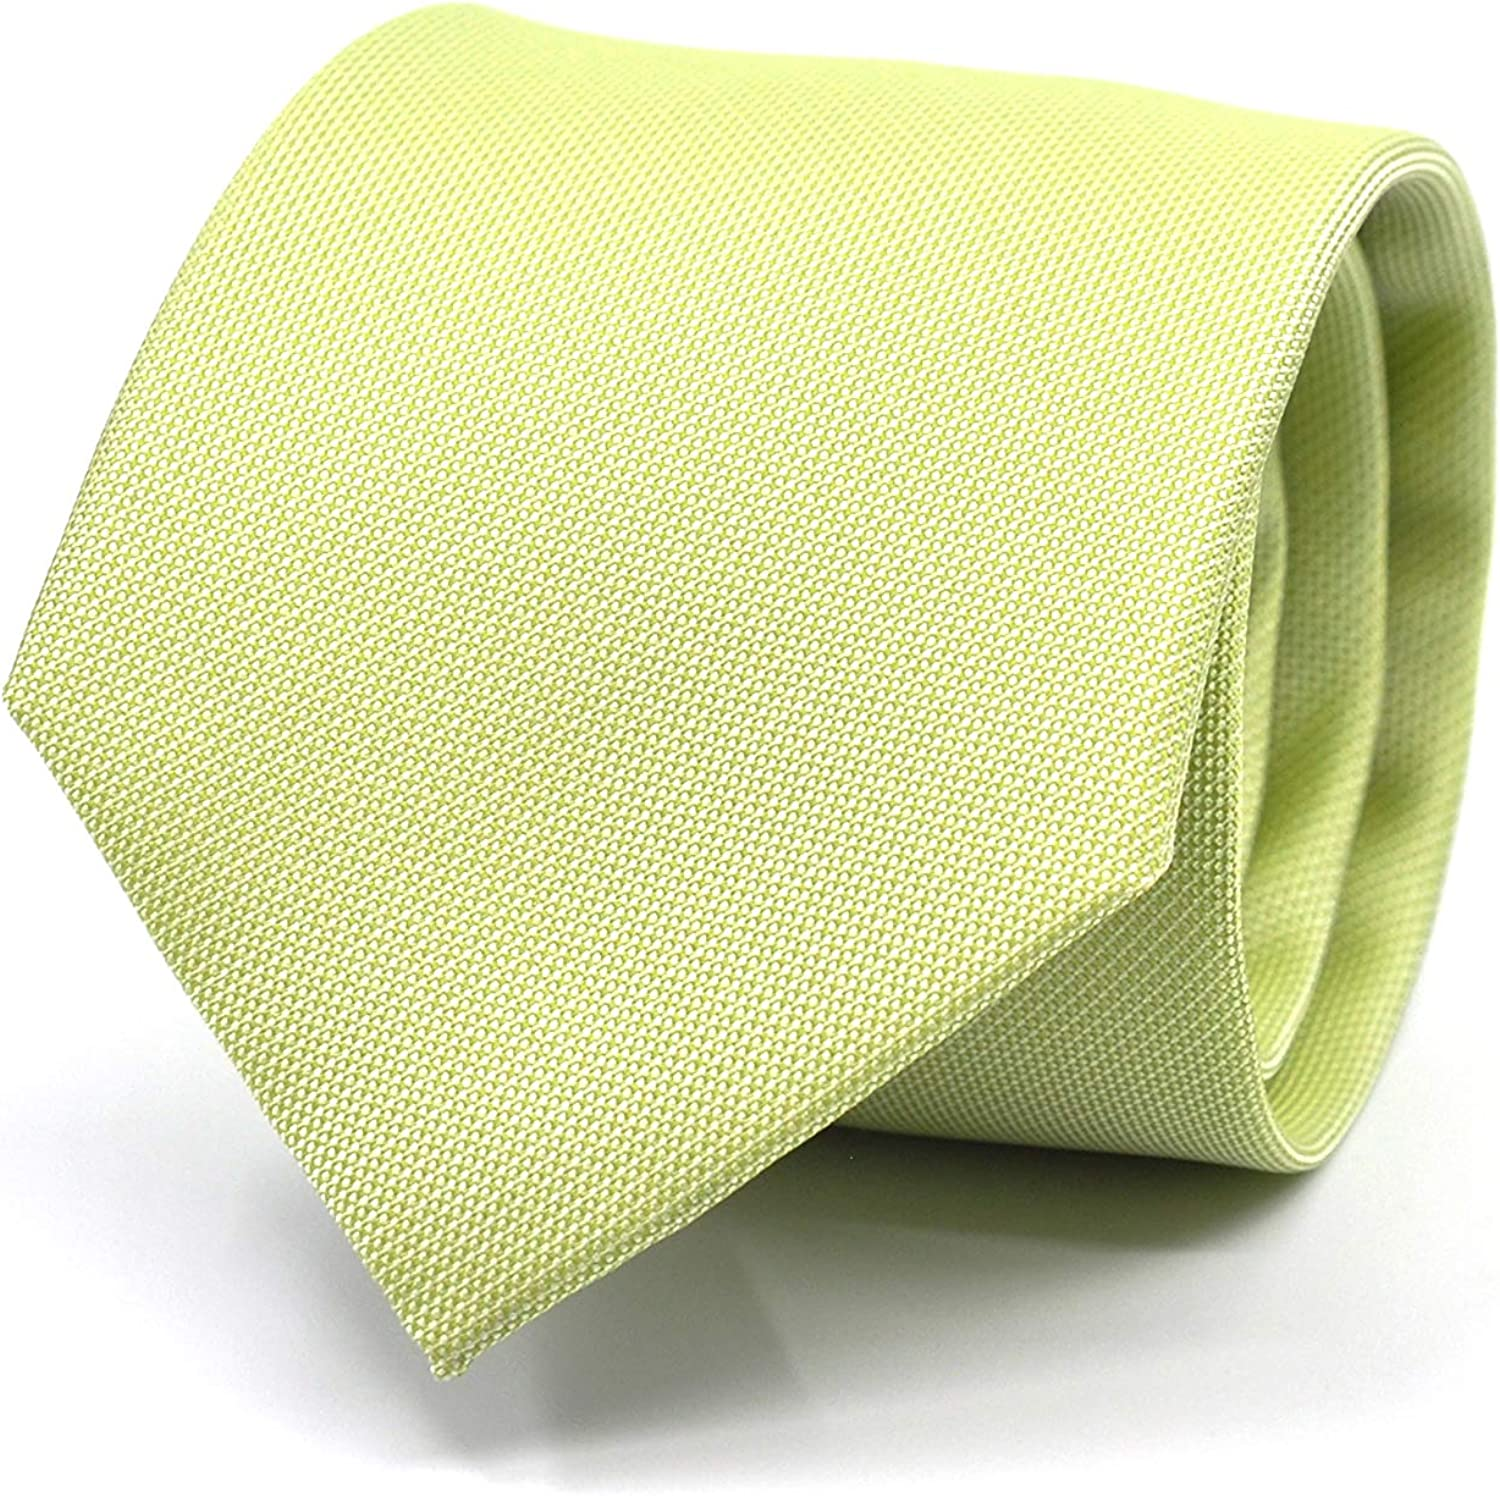 The Oxford - Green Men's Ties store TOUT Washable Men for Latest item Neckties